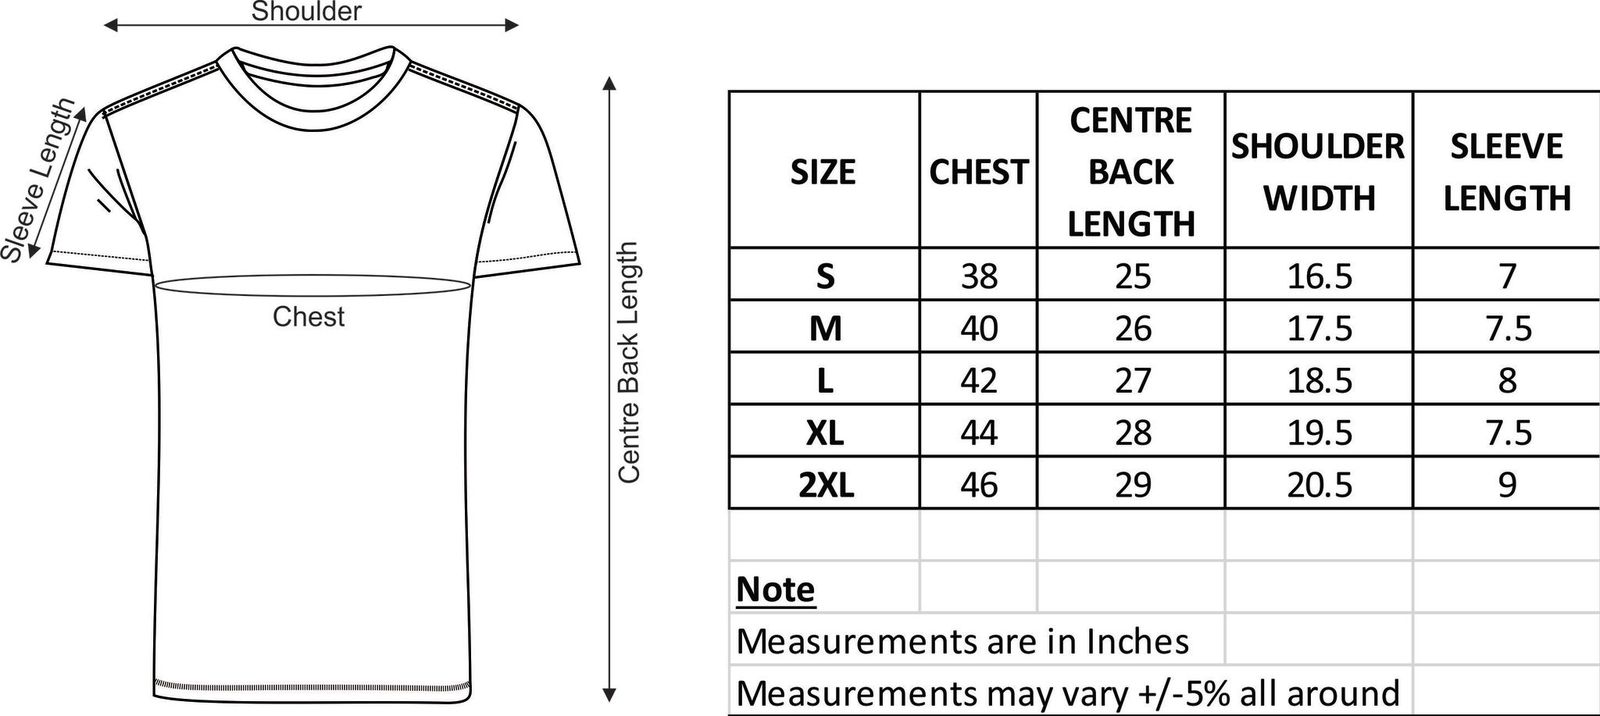 Krissxross Men's 100 % Cotton Premium Bio Washed Grey2 DTG Graphic Printed T-Shirt - (Dirt Track)